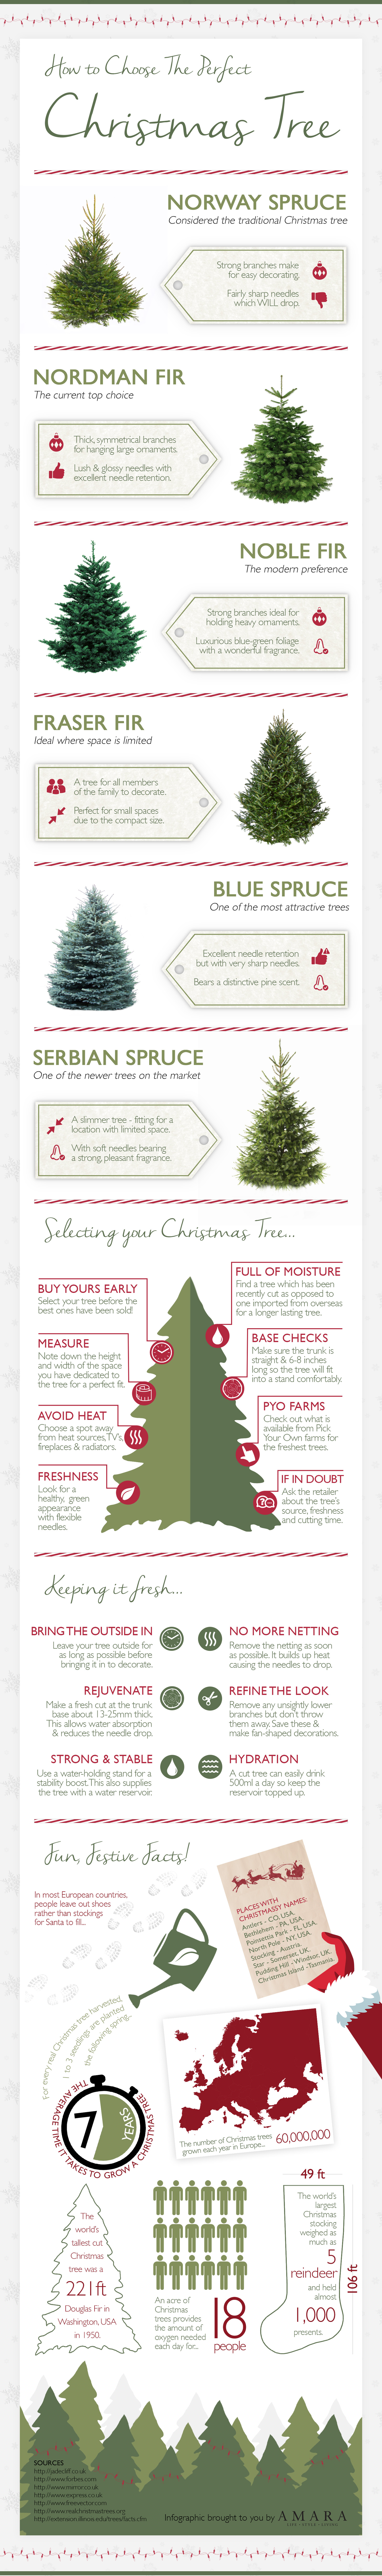 Image titled 'Tips to Choose Your Perfect Christmas Tree and Keep It Fresh'